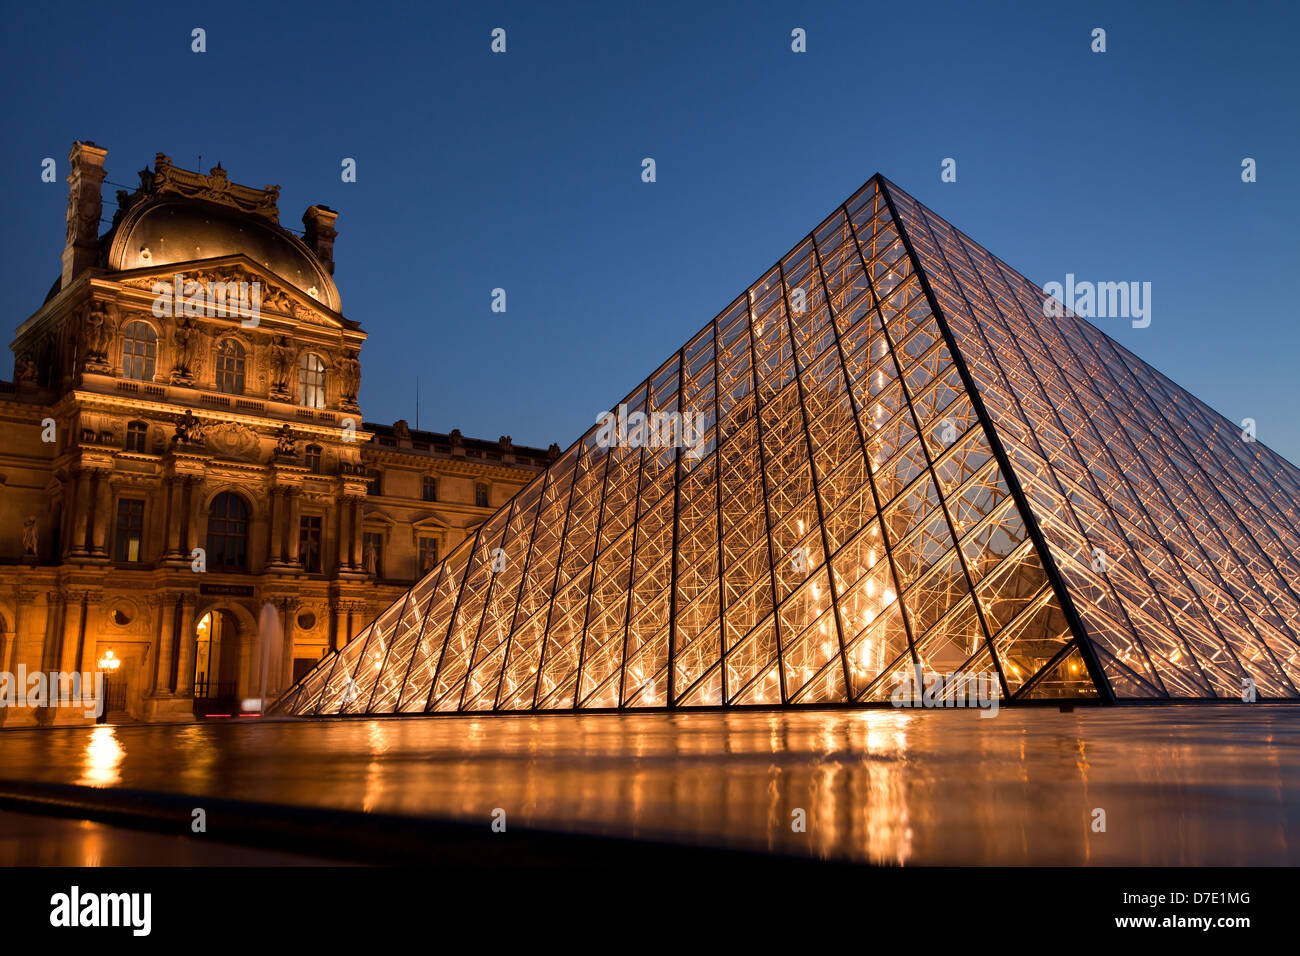 Louvre museum by night, Paris, France - Stock Image